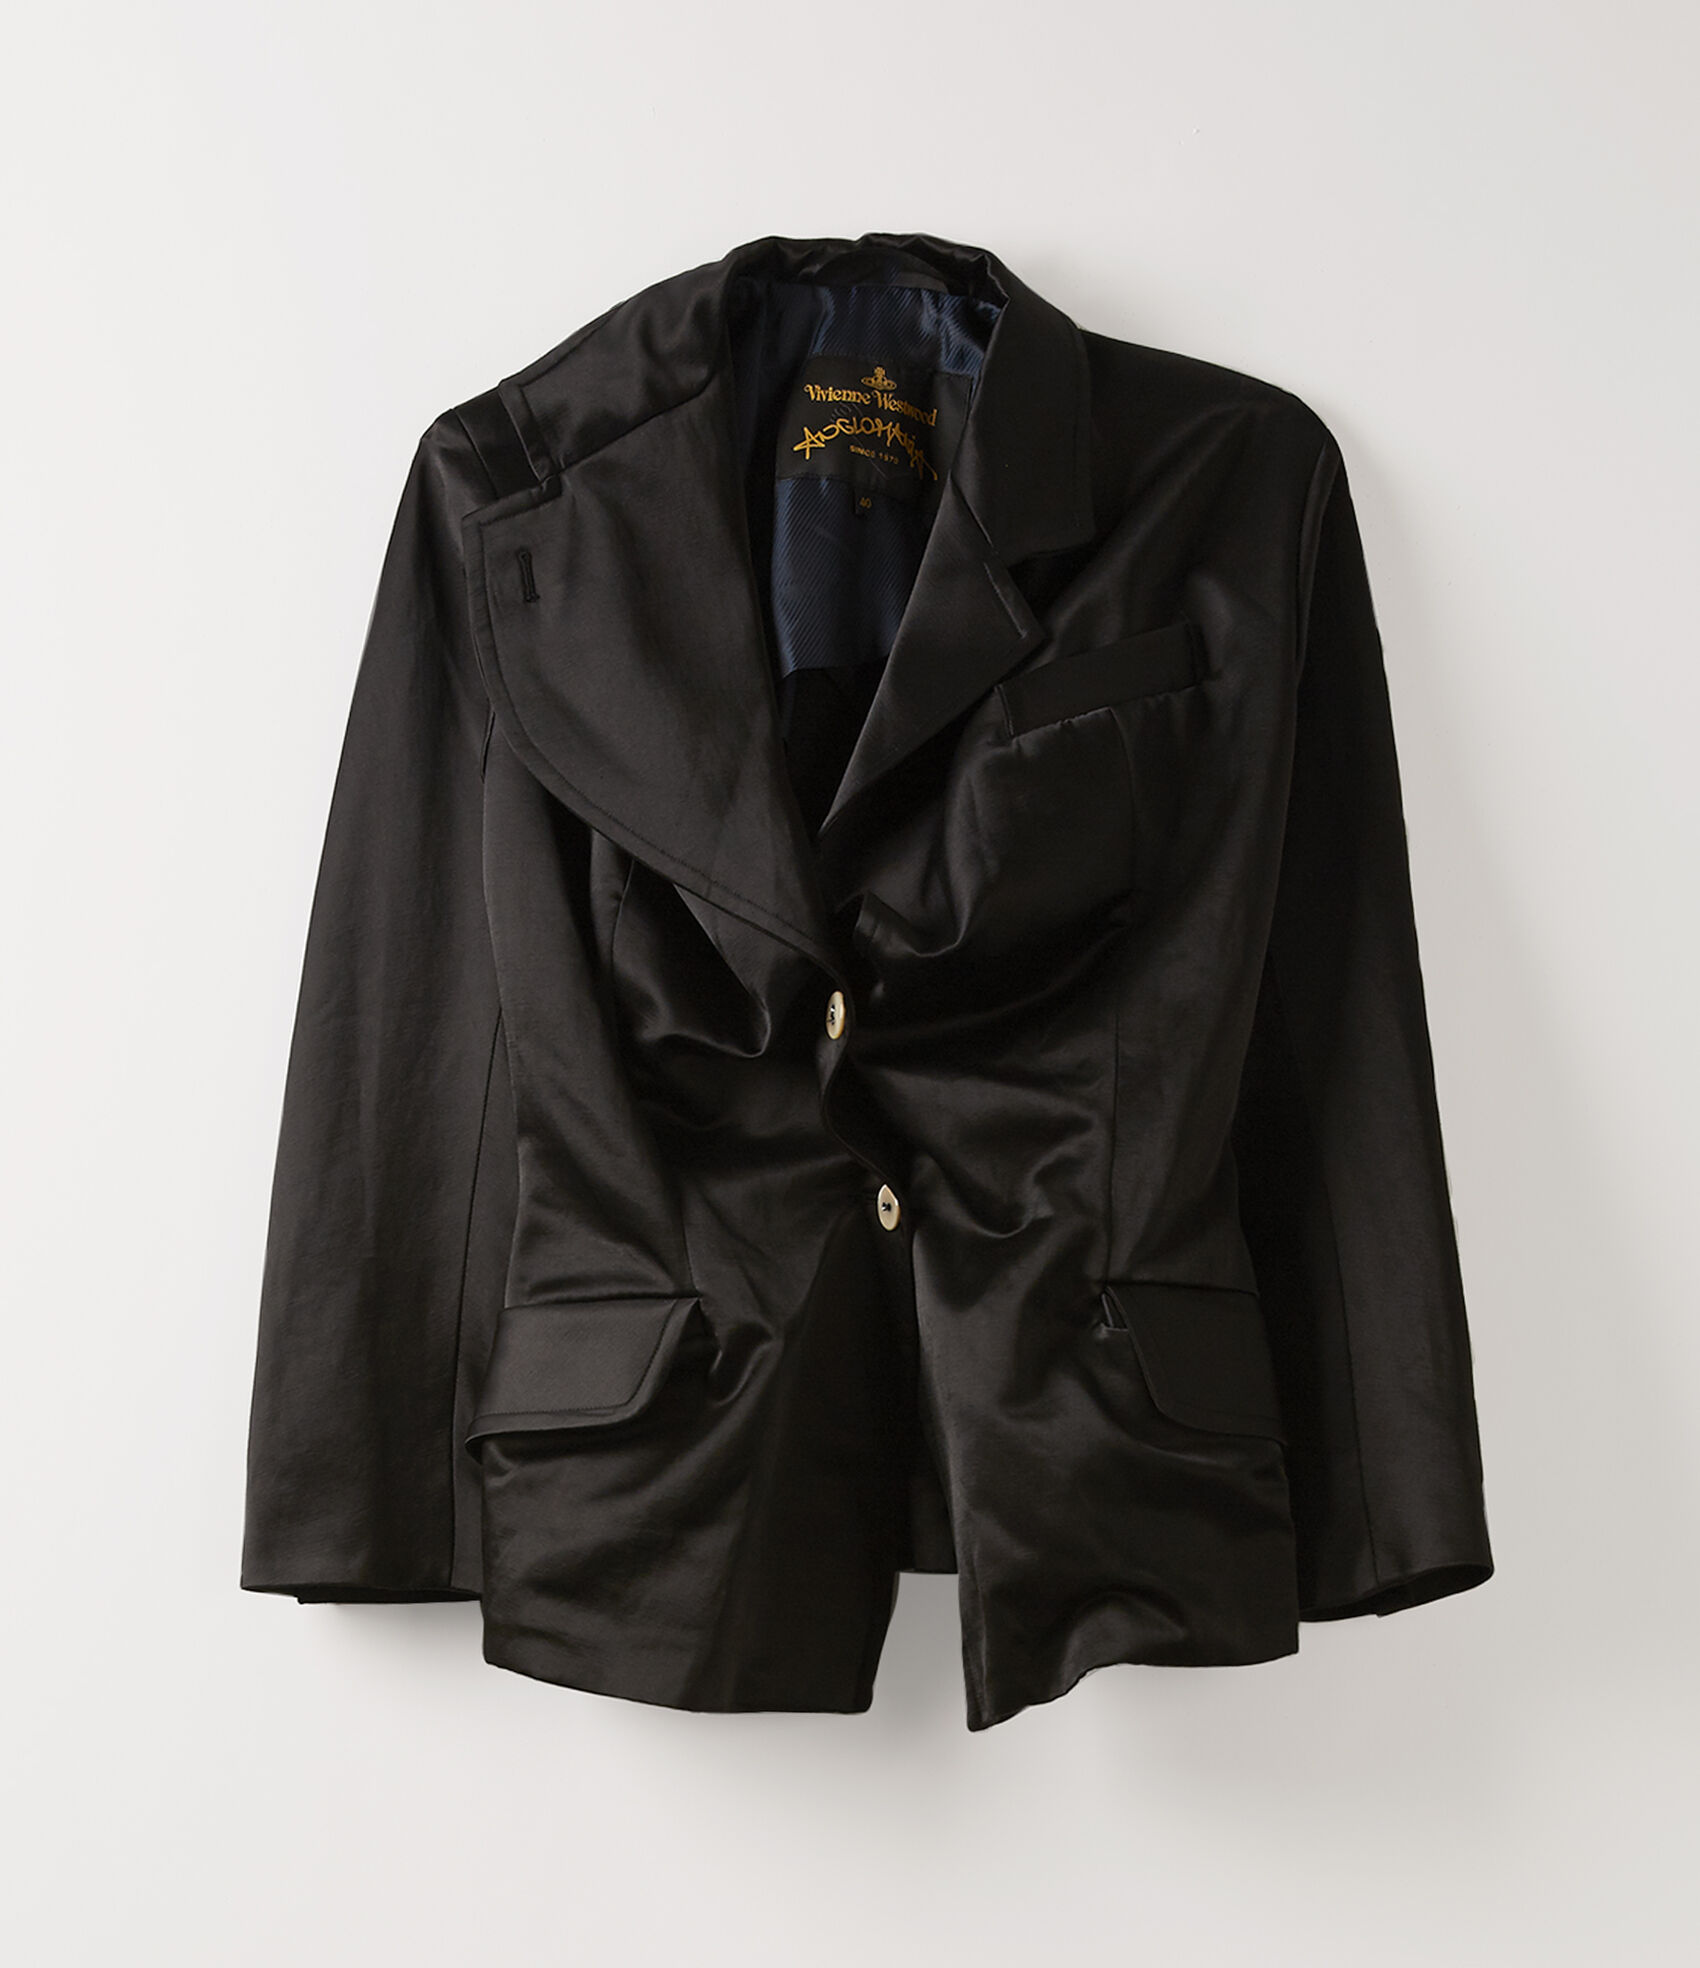 Alcoholic Jacket in Black from Vivienne Westwood